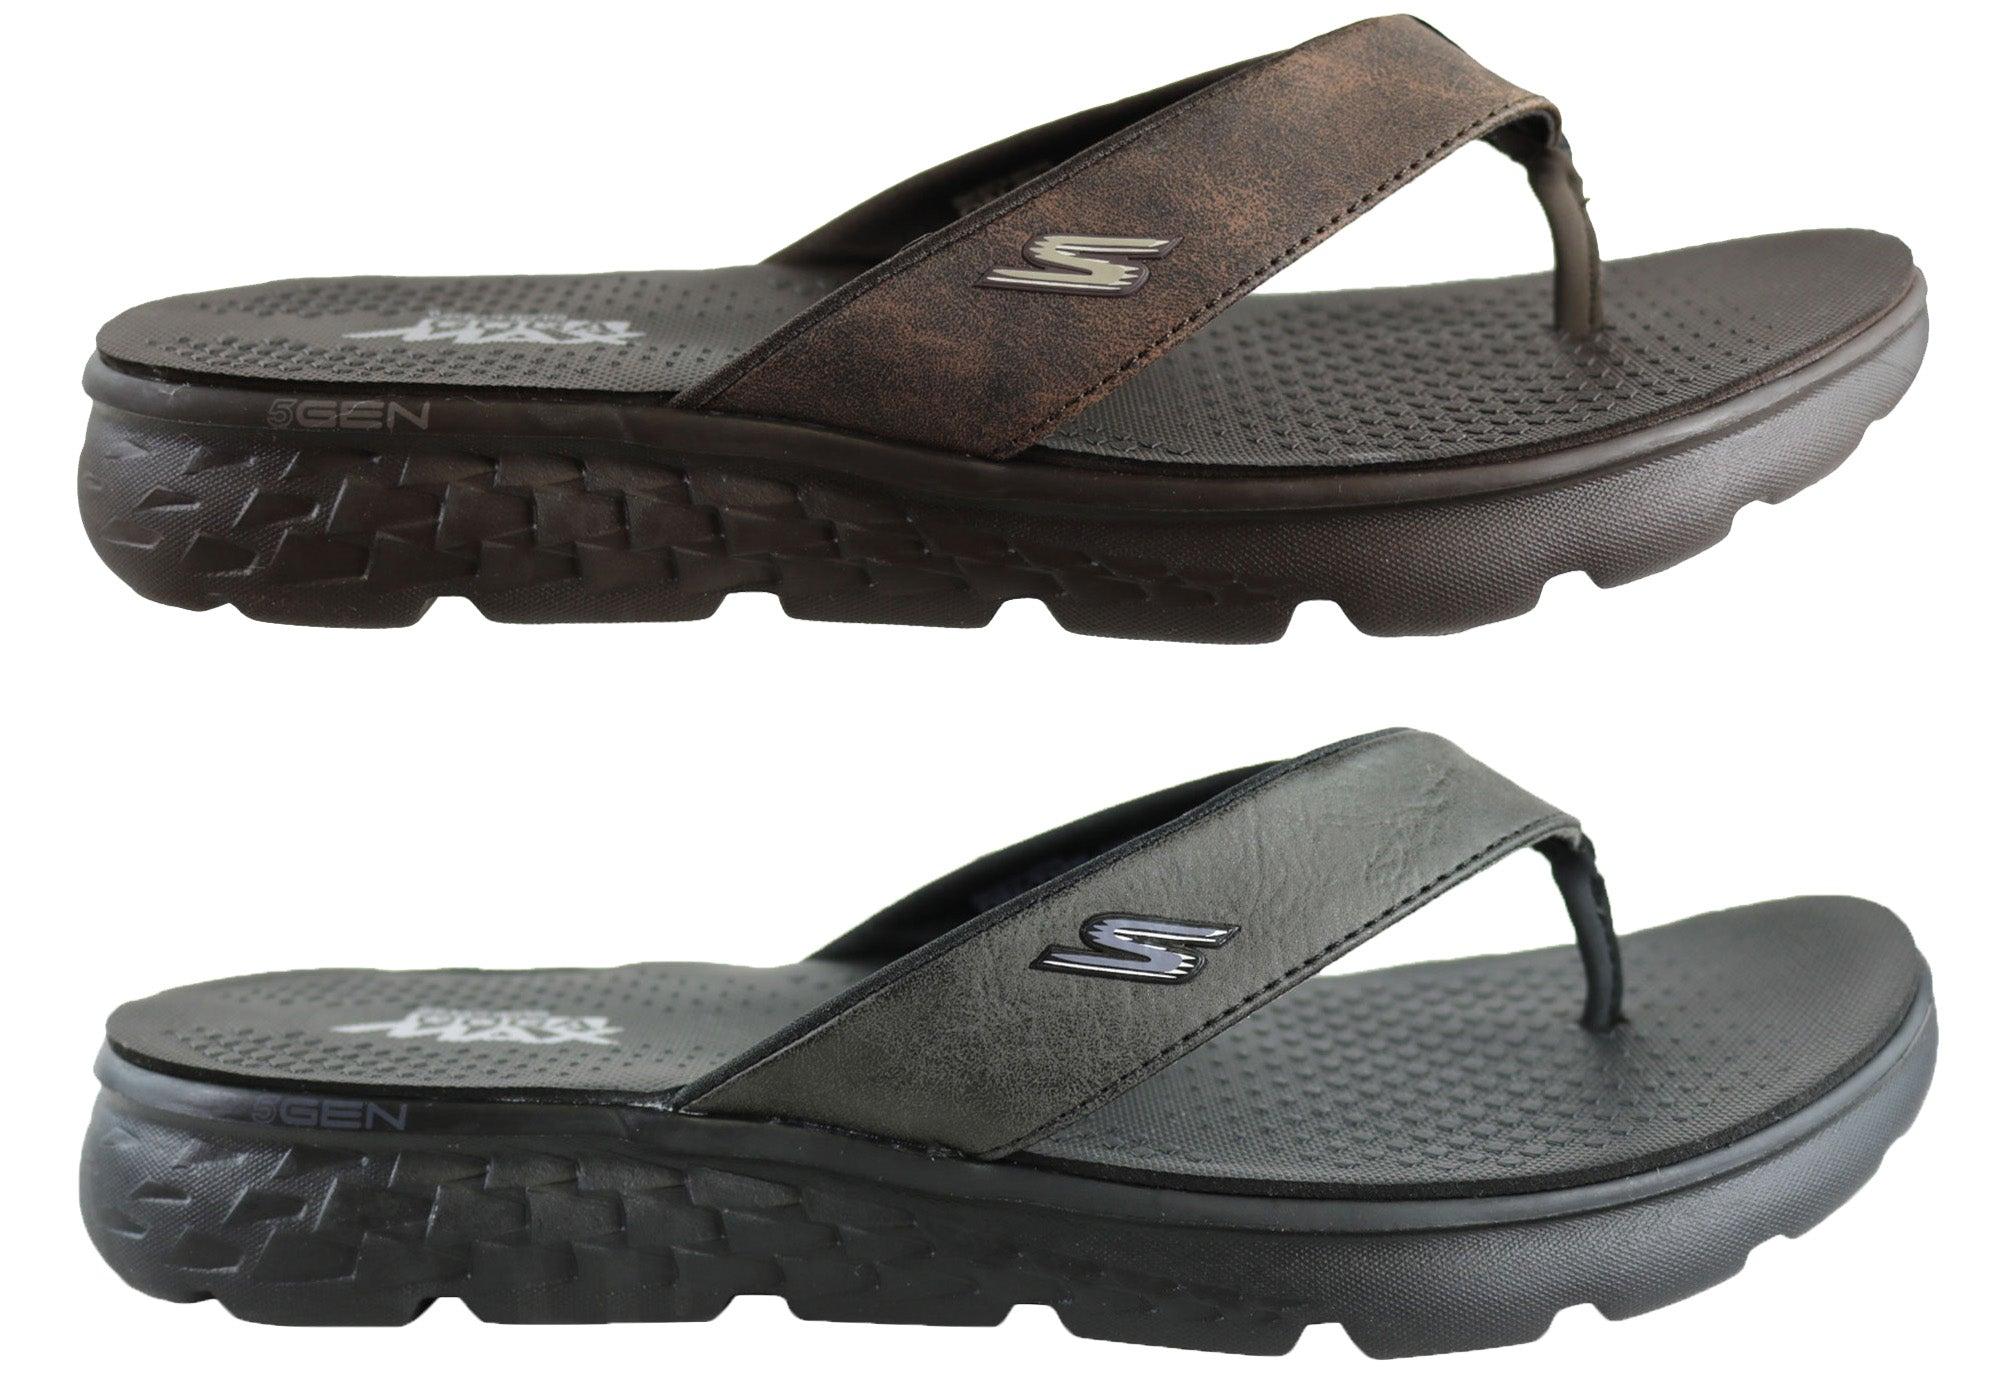 e8655bc8554a Mens Skechers On The Go 400 Vista Comfortable Thongs Flip Flops ...